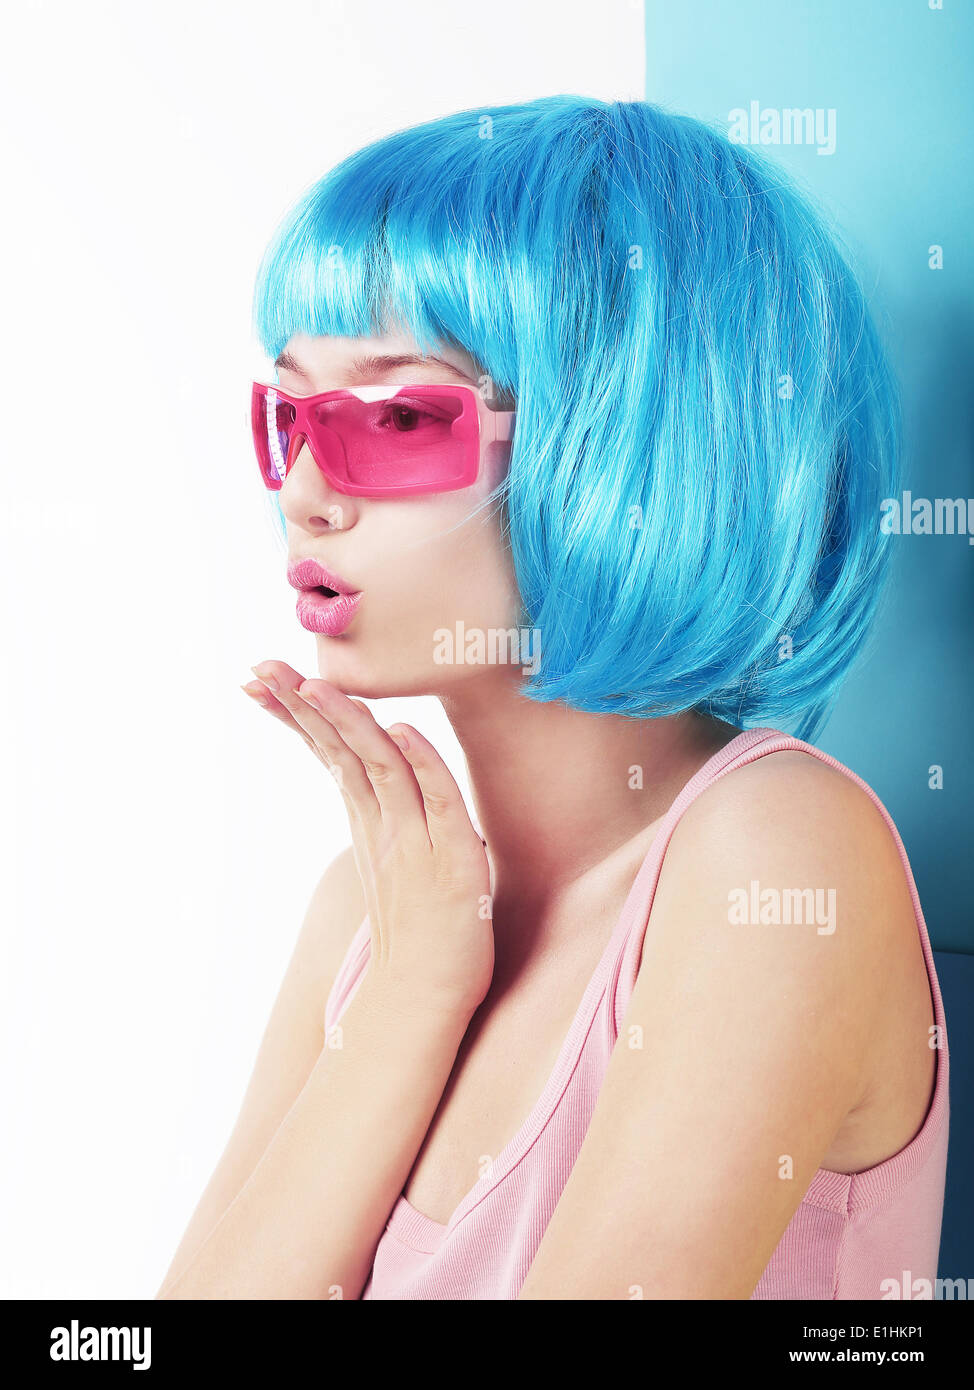 Manga Style. Profile of Charismatic Woman in Blue Wig Blowing a Kiss - Stock Image